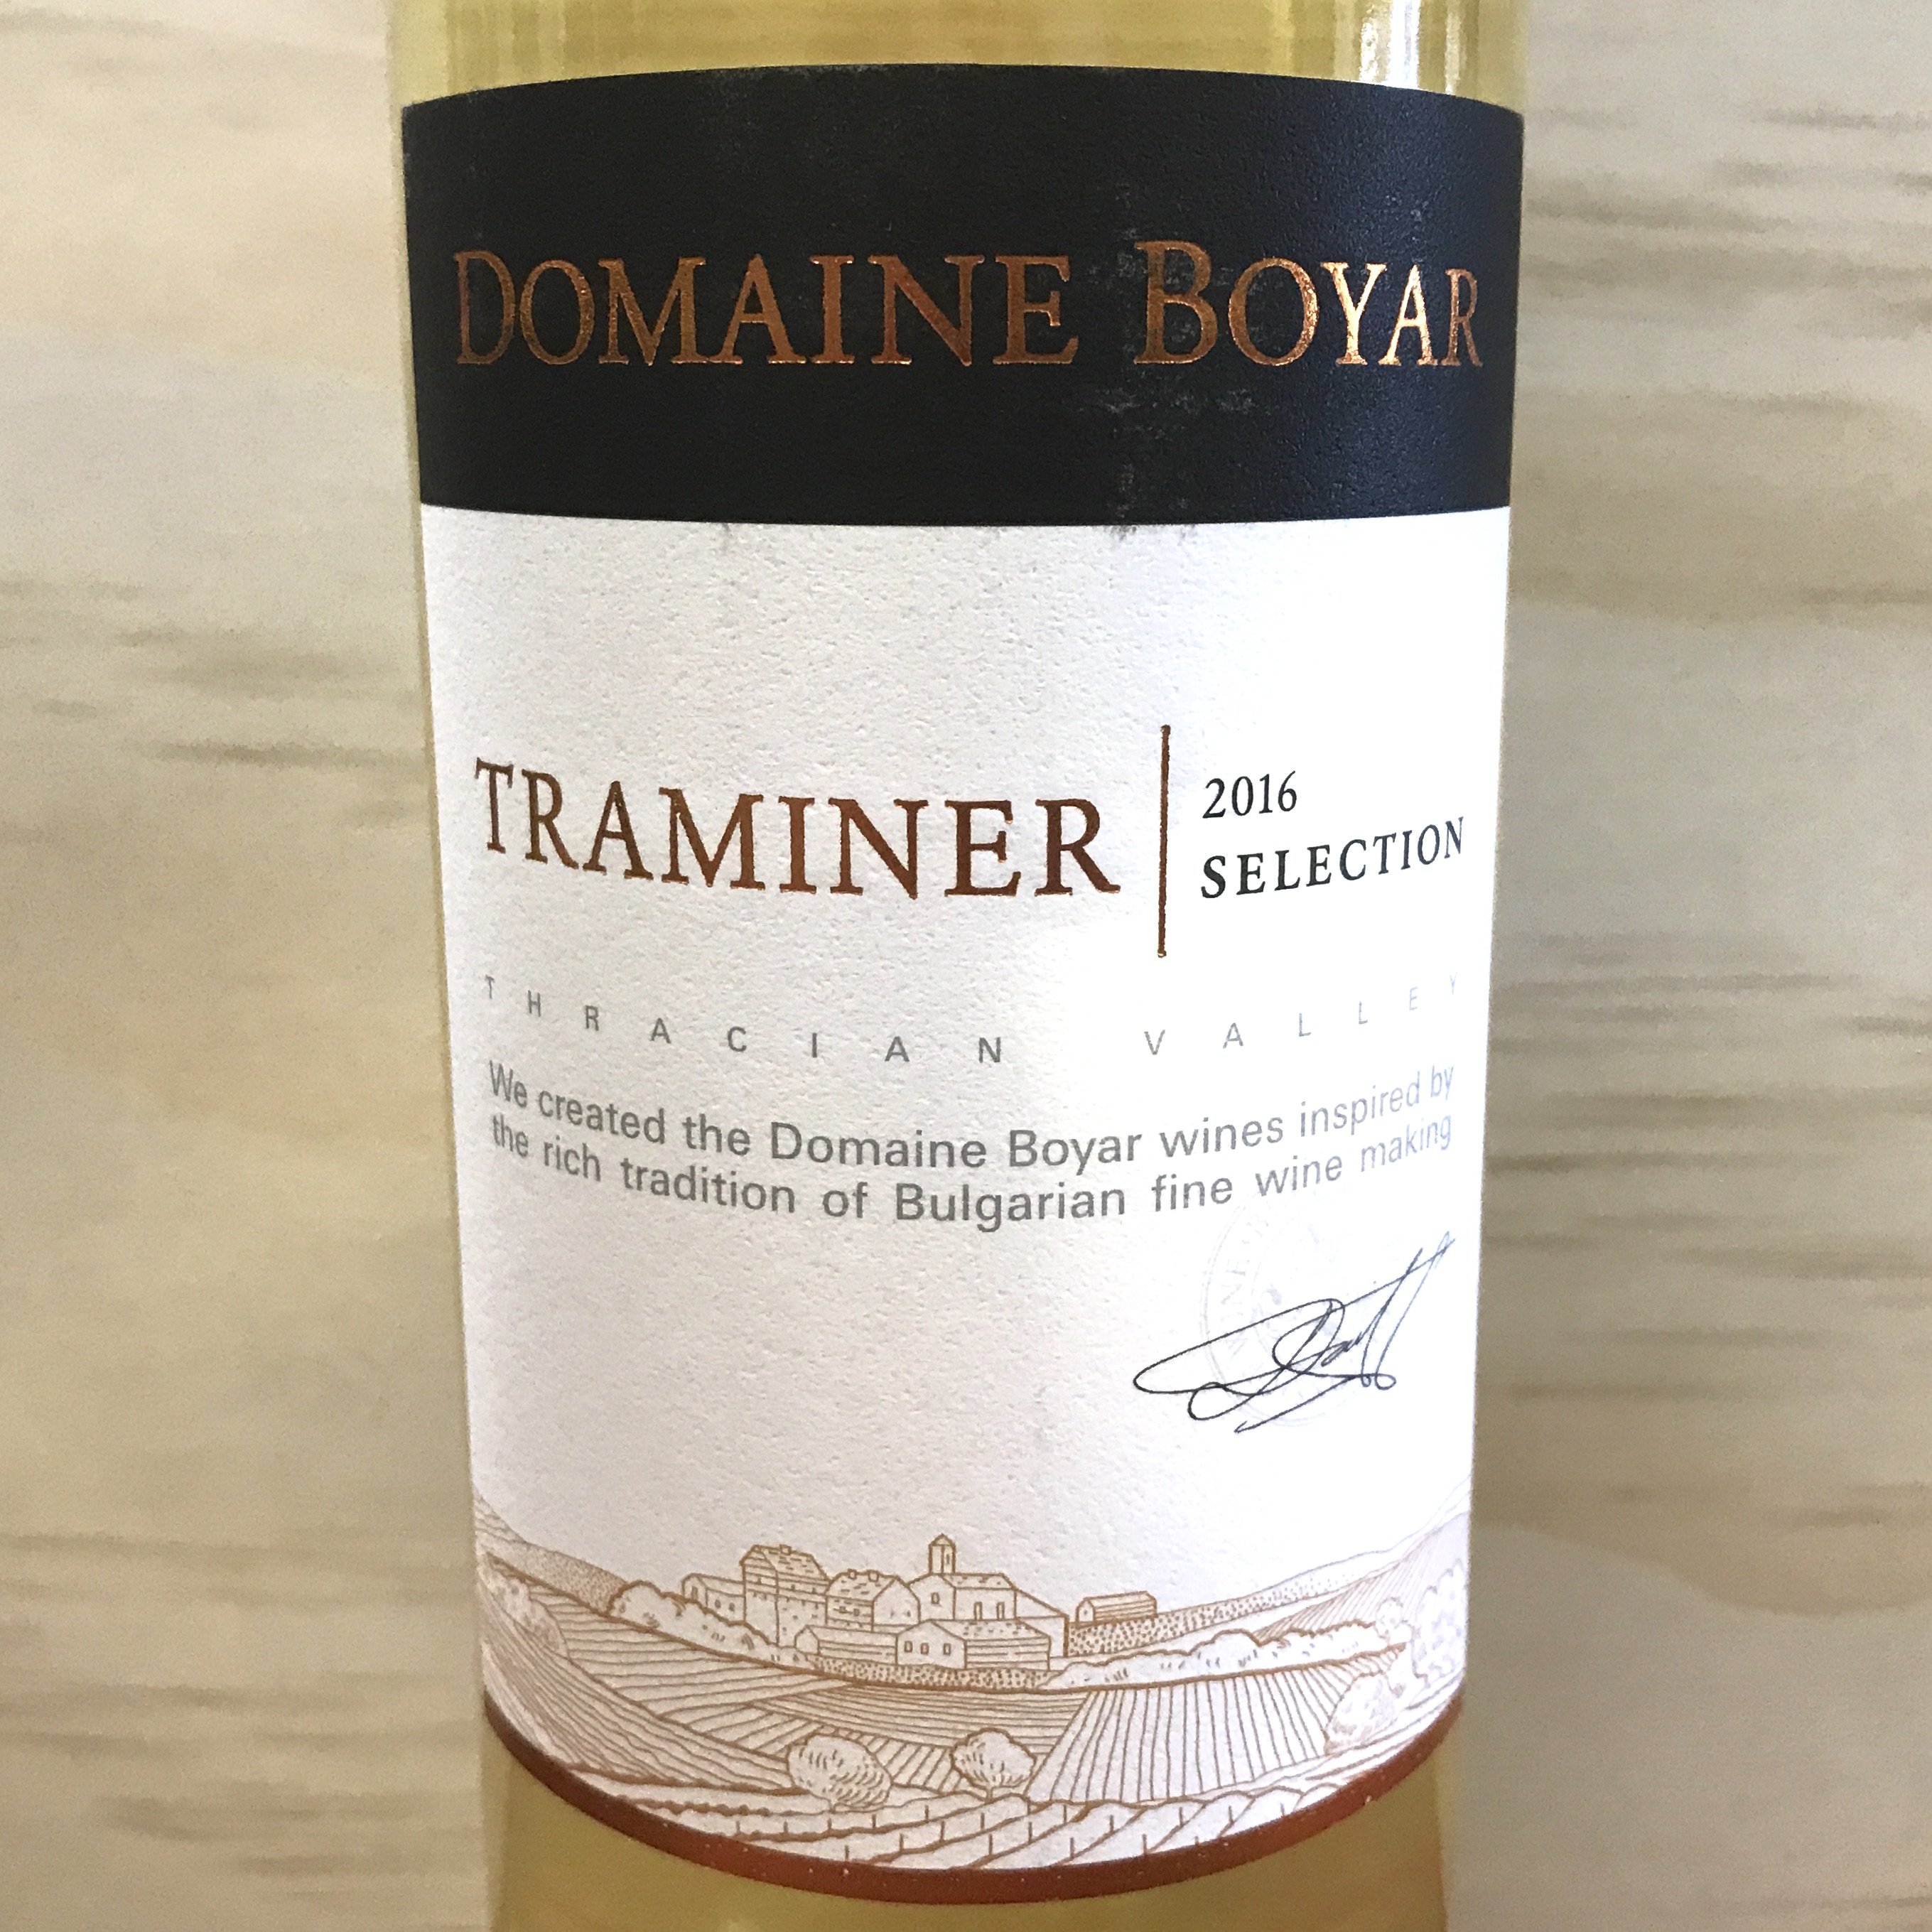 Domaine Boyar Traminer Selection 2016 Bulgaria